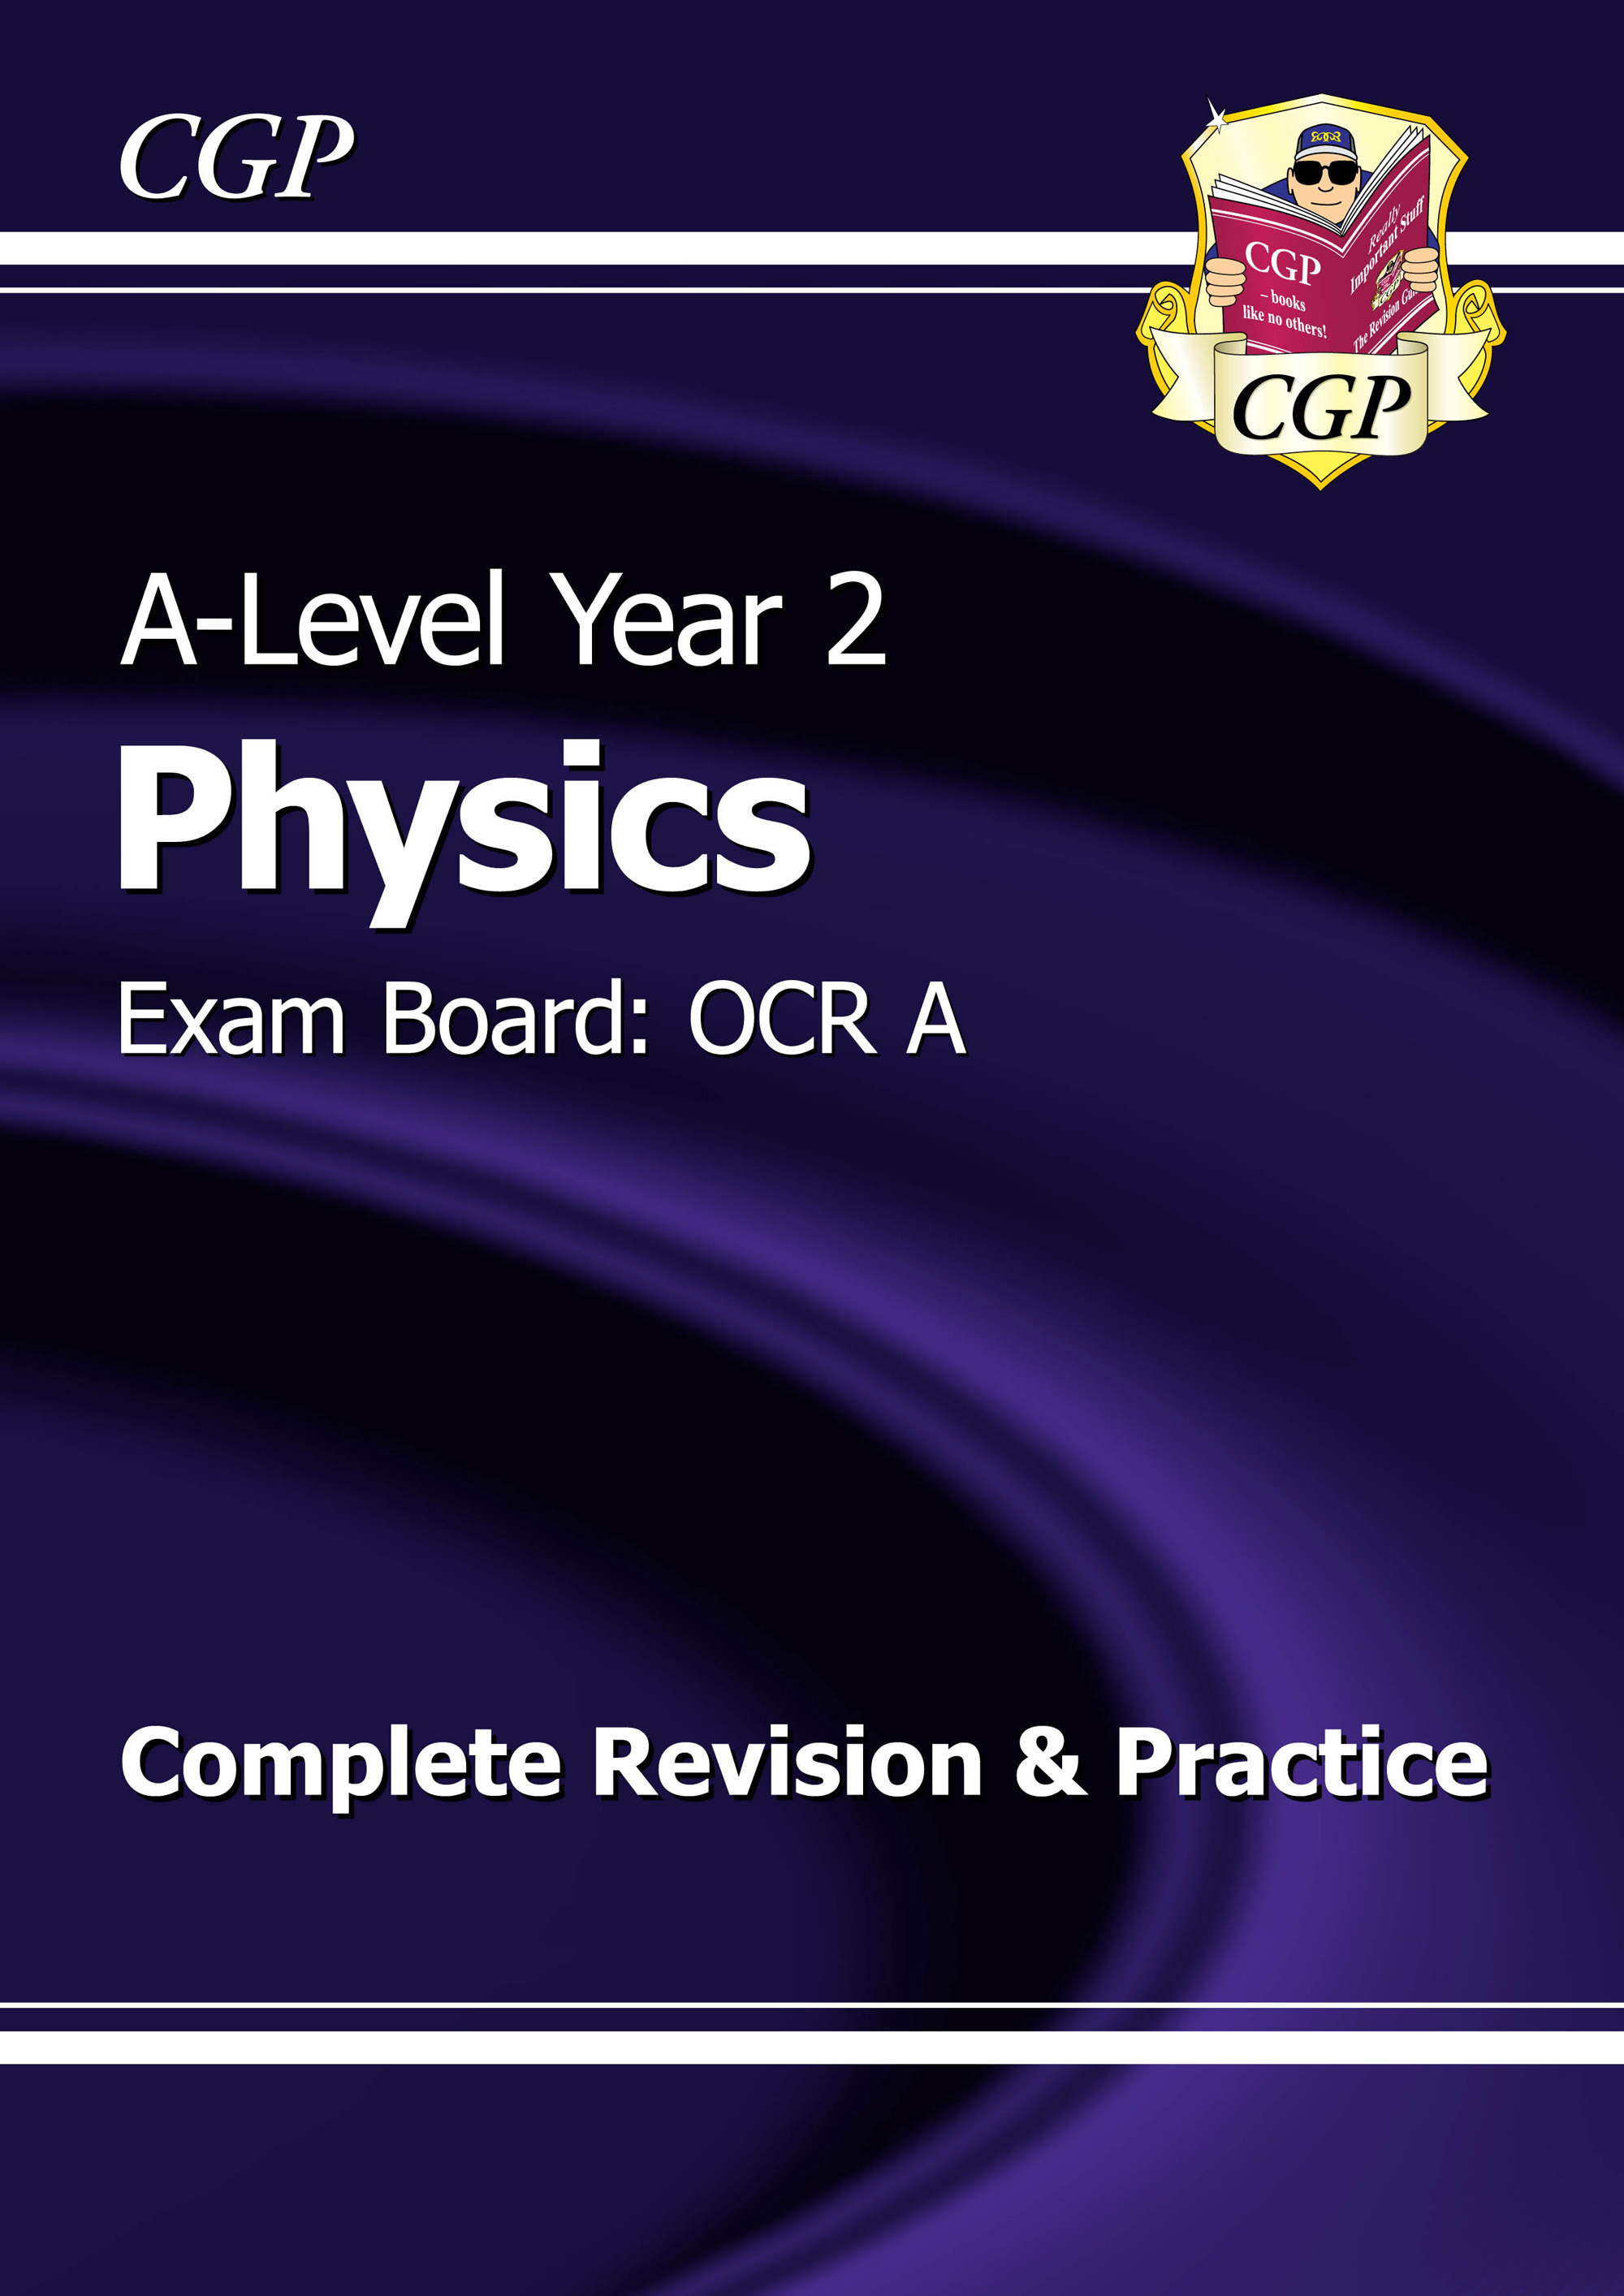 PRAR62DK - A-Level Physics: OCR A Year 2 Complete Revision & Practice